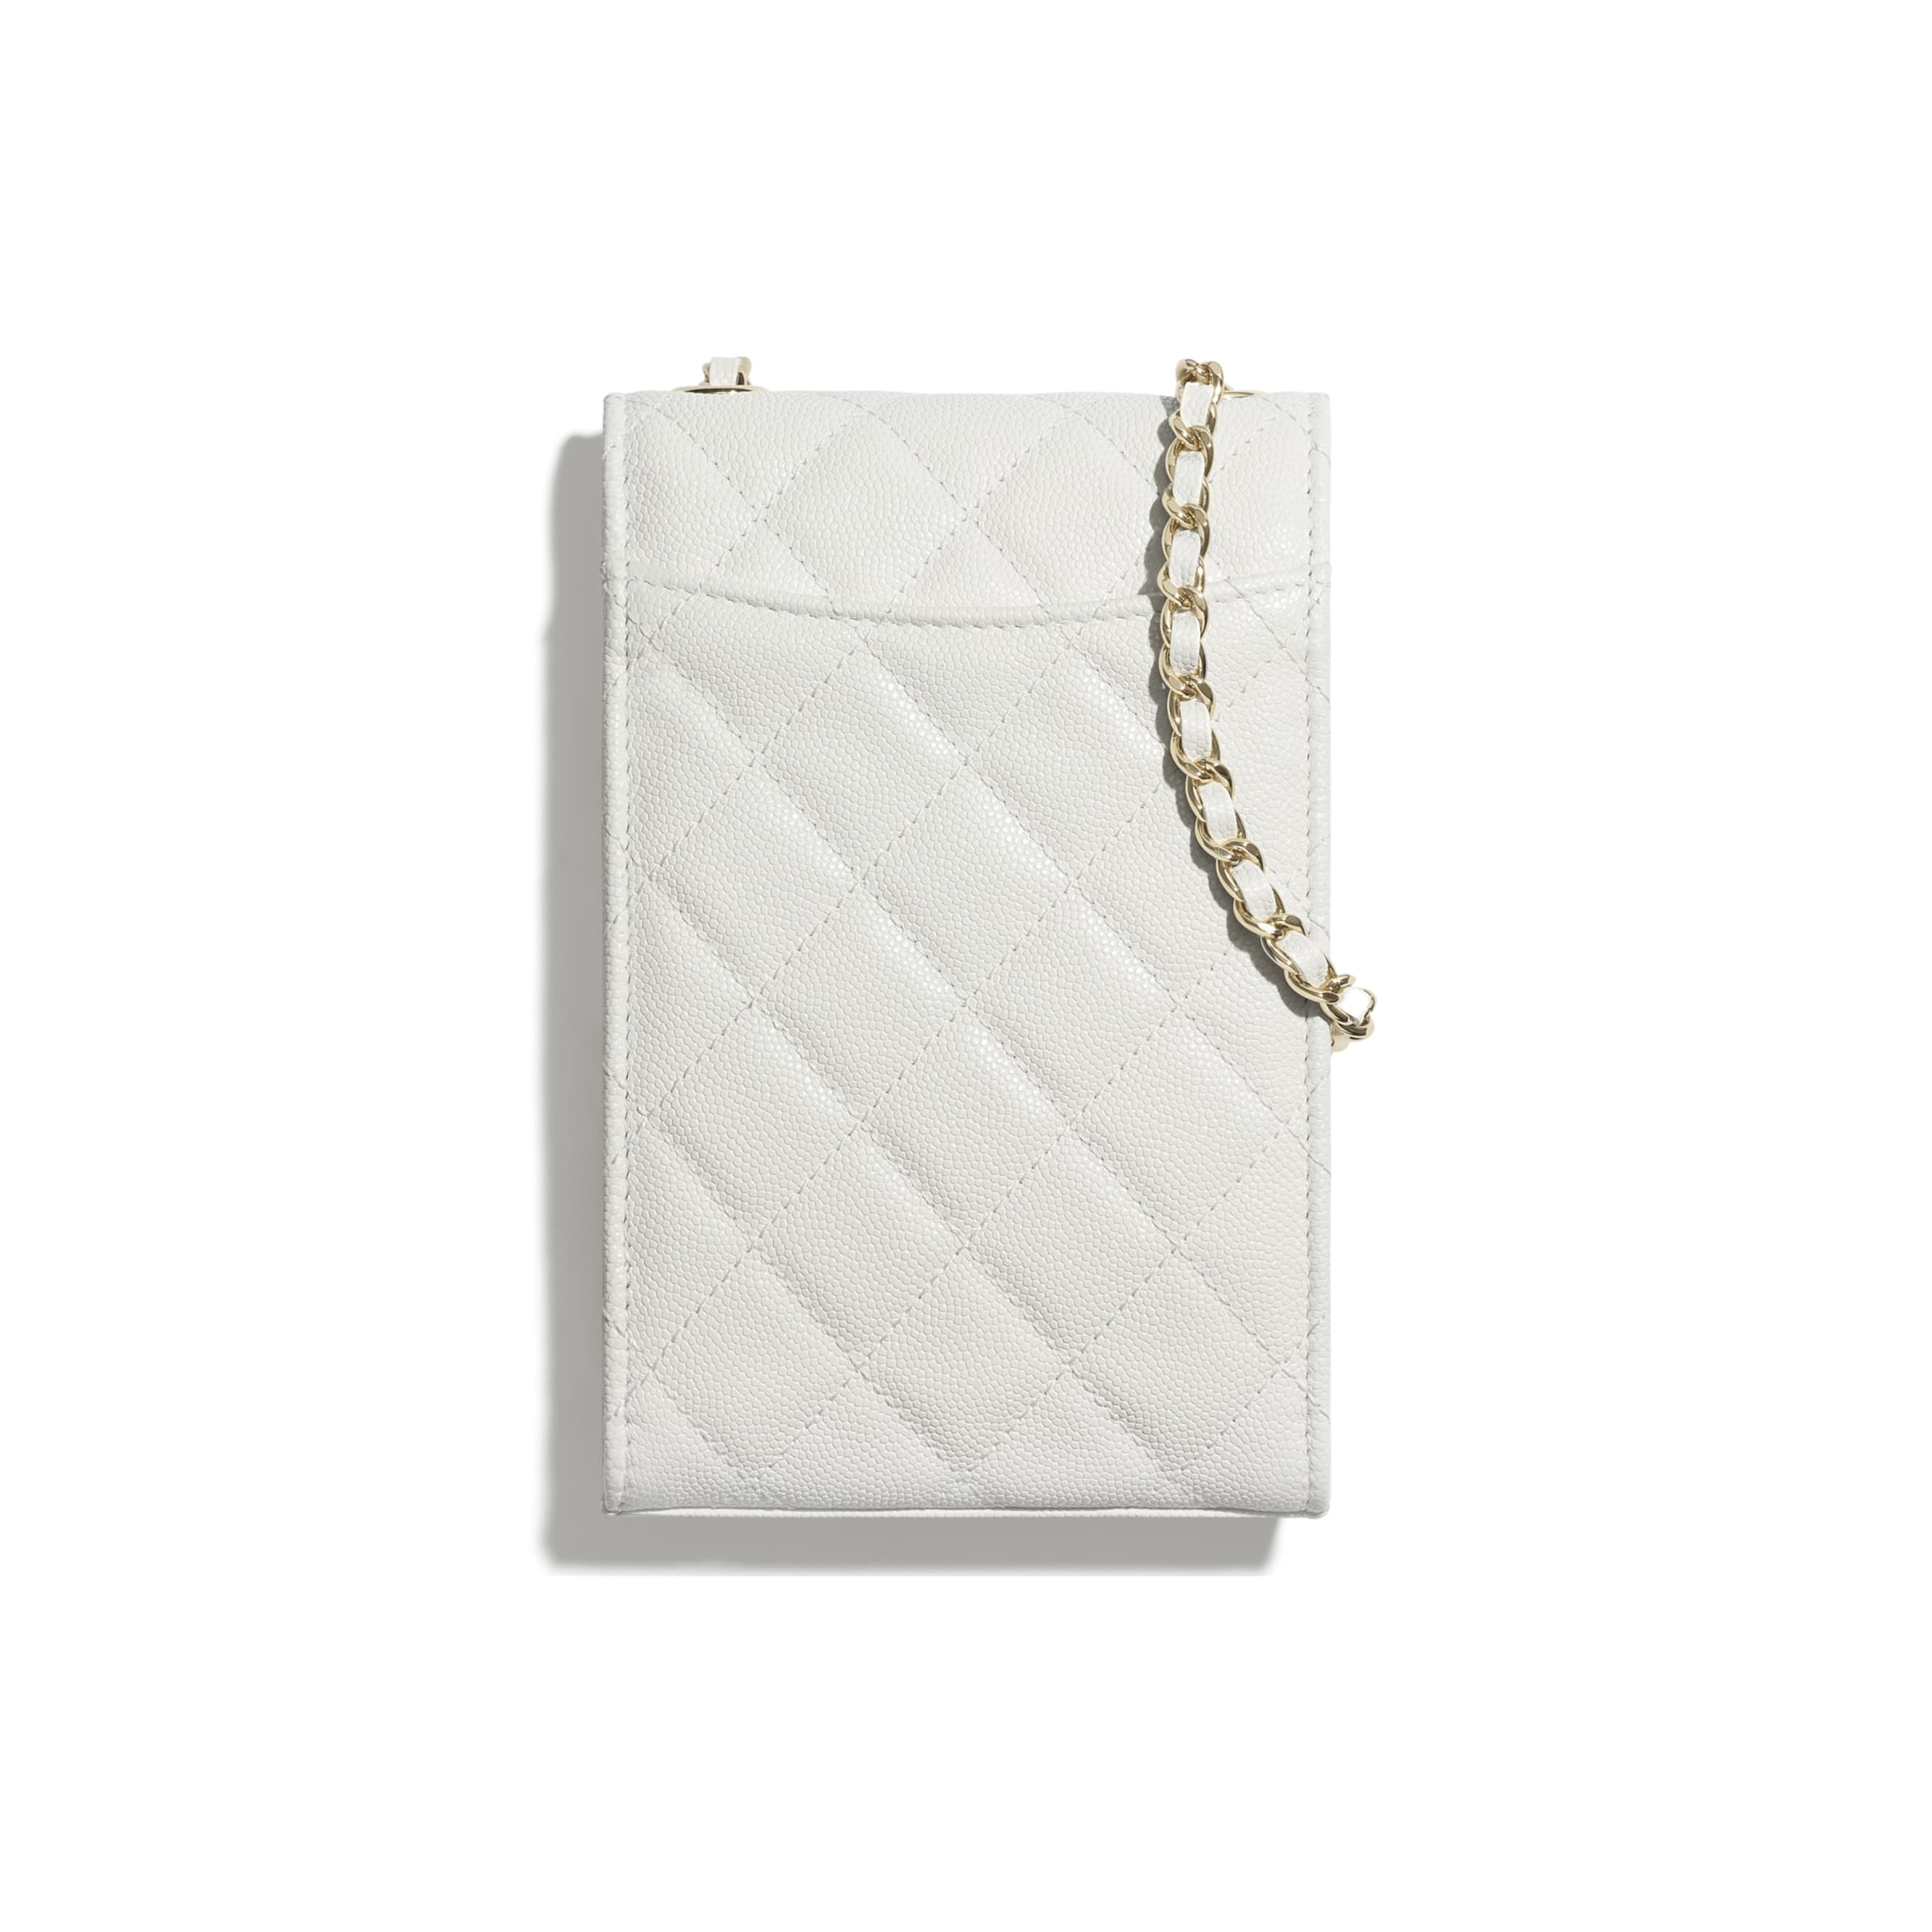 Classic Clutch With Chain - White - Grained Calfskin & Gold-Tone Metal - CHANEL - Alternative view - see standard sized version